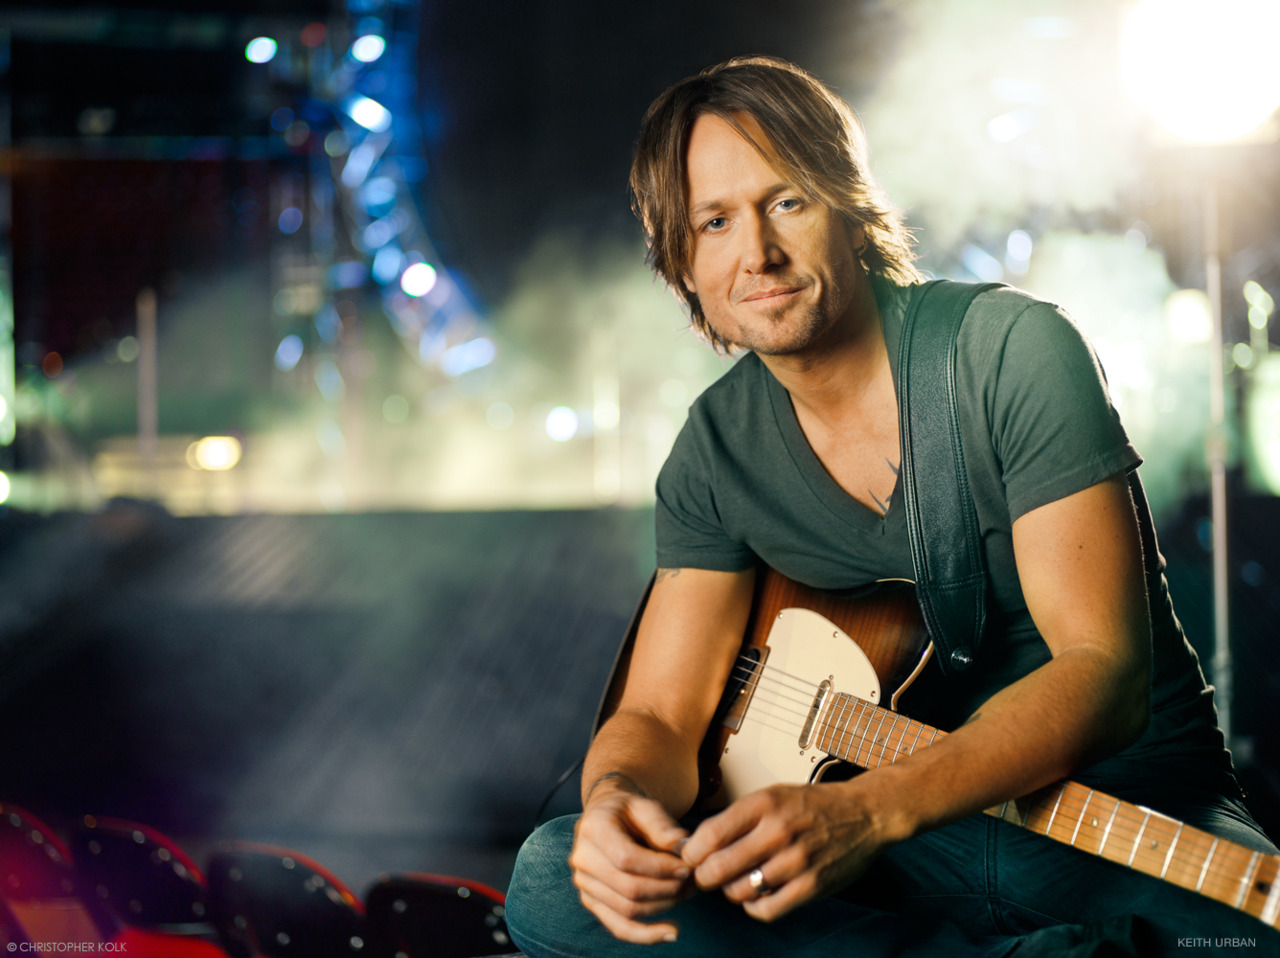 Keith Urban - Keith Urban Photo (24938250) - Fanpop